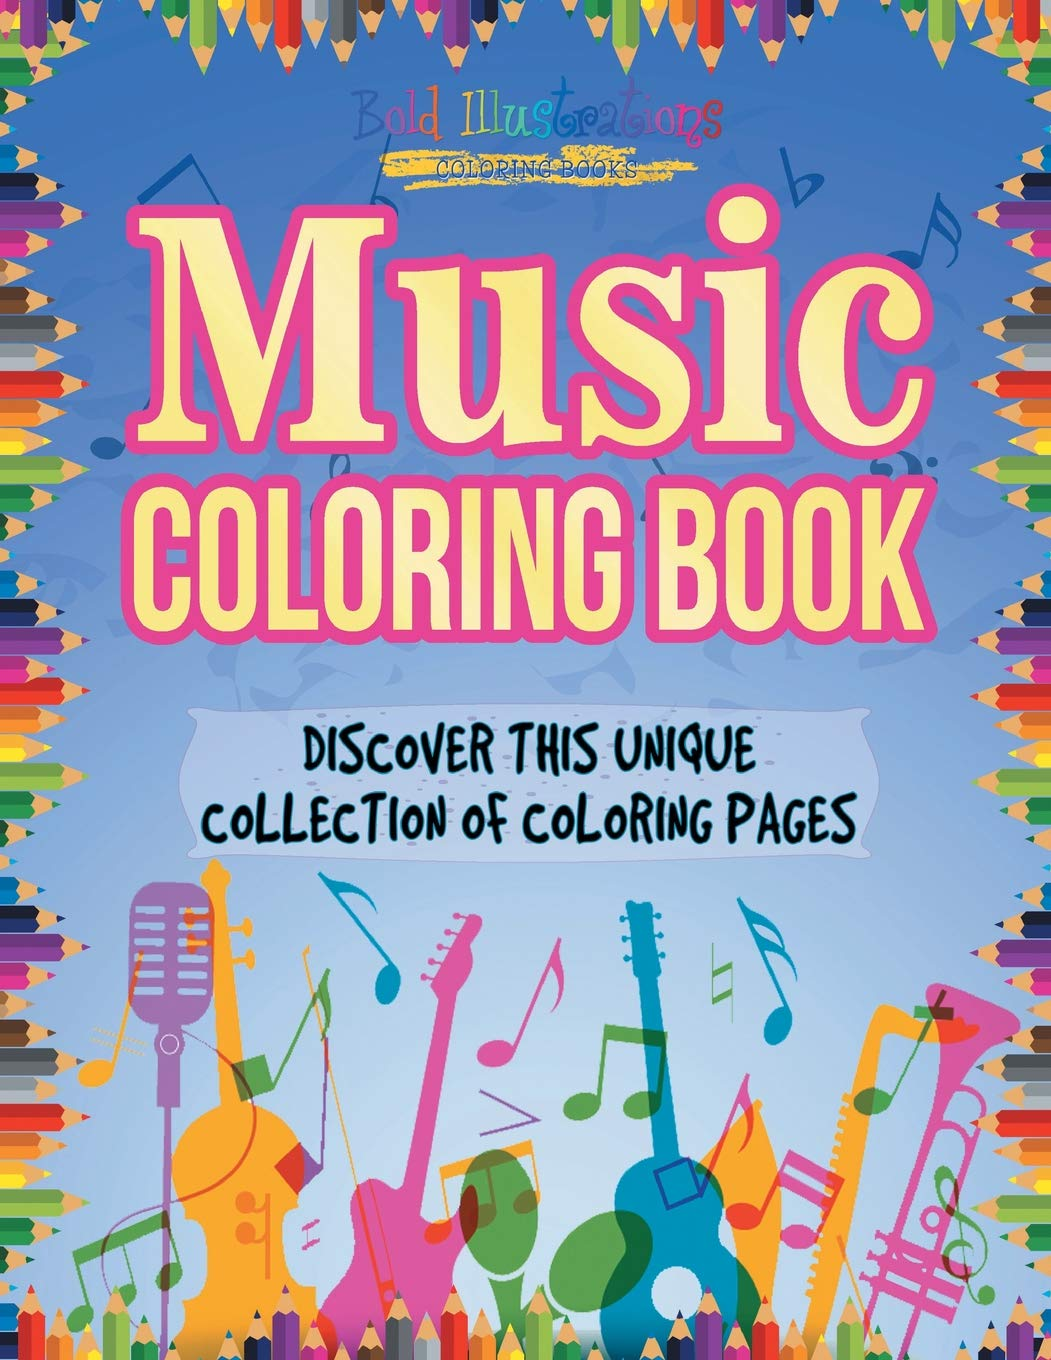 music coloring pages for kids Coloring4free - Coloring4Free.com | 1360x1051